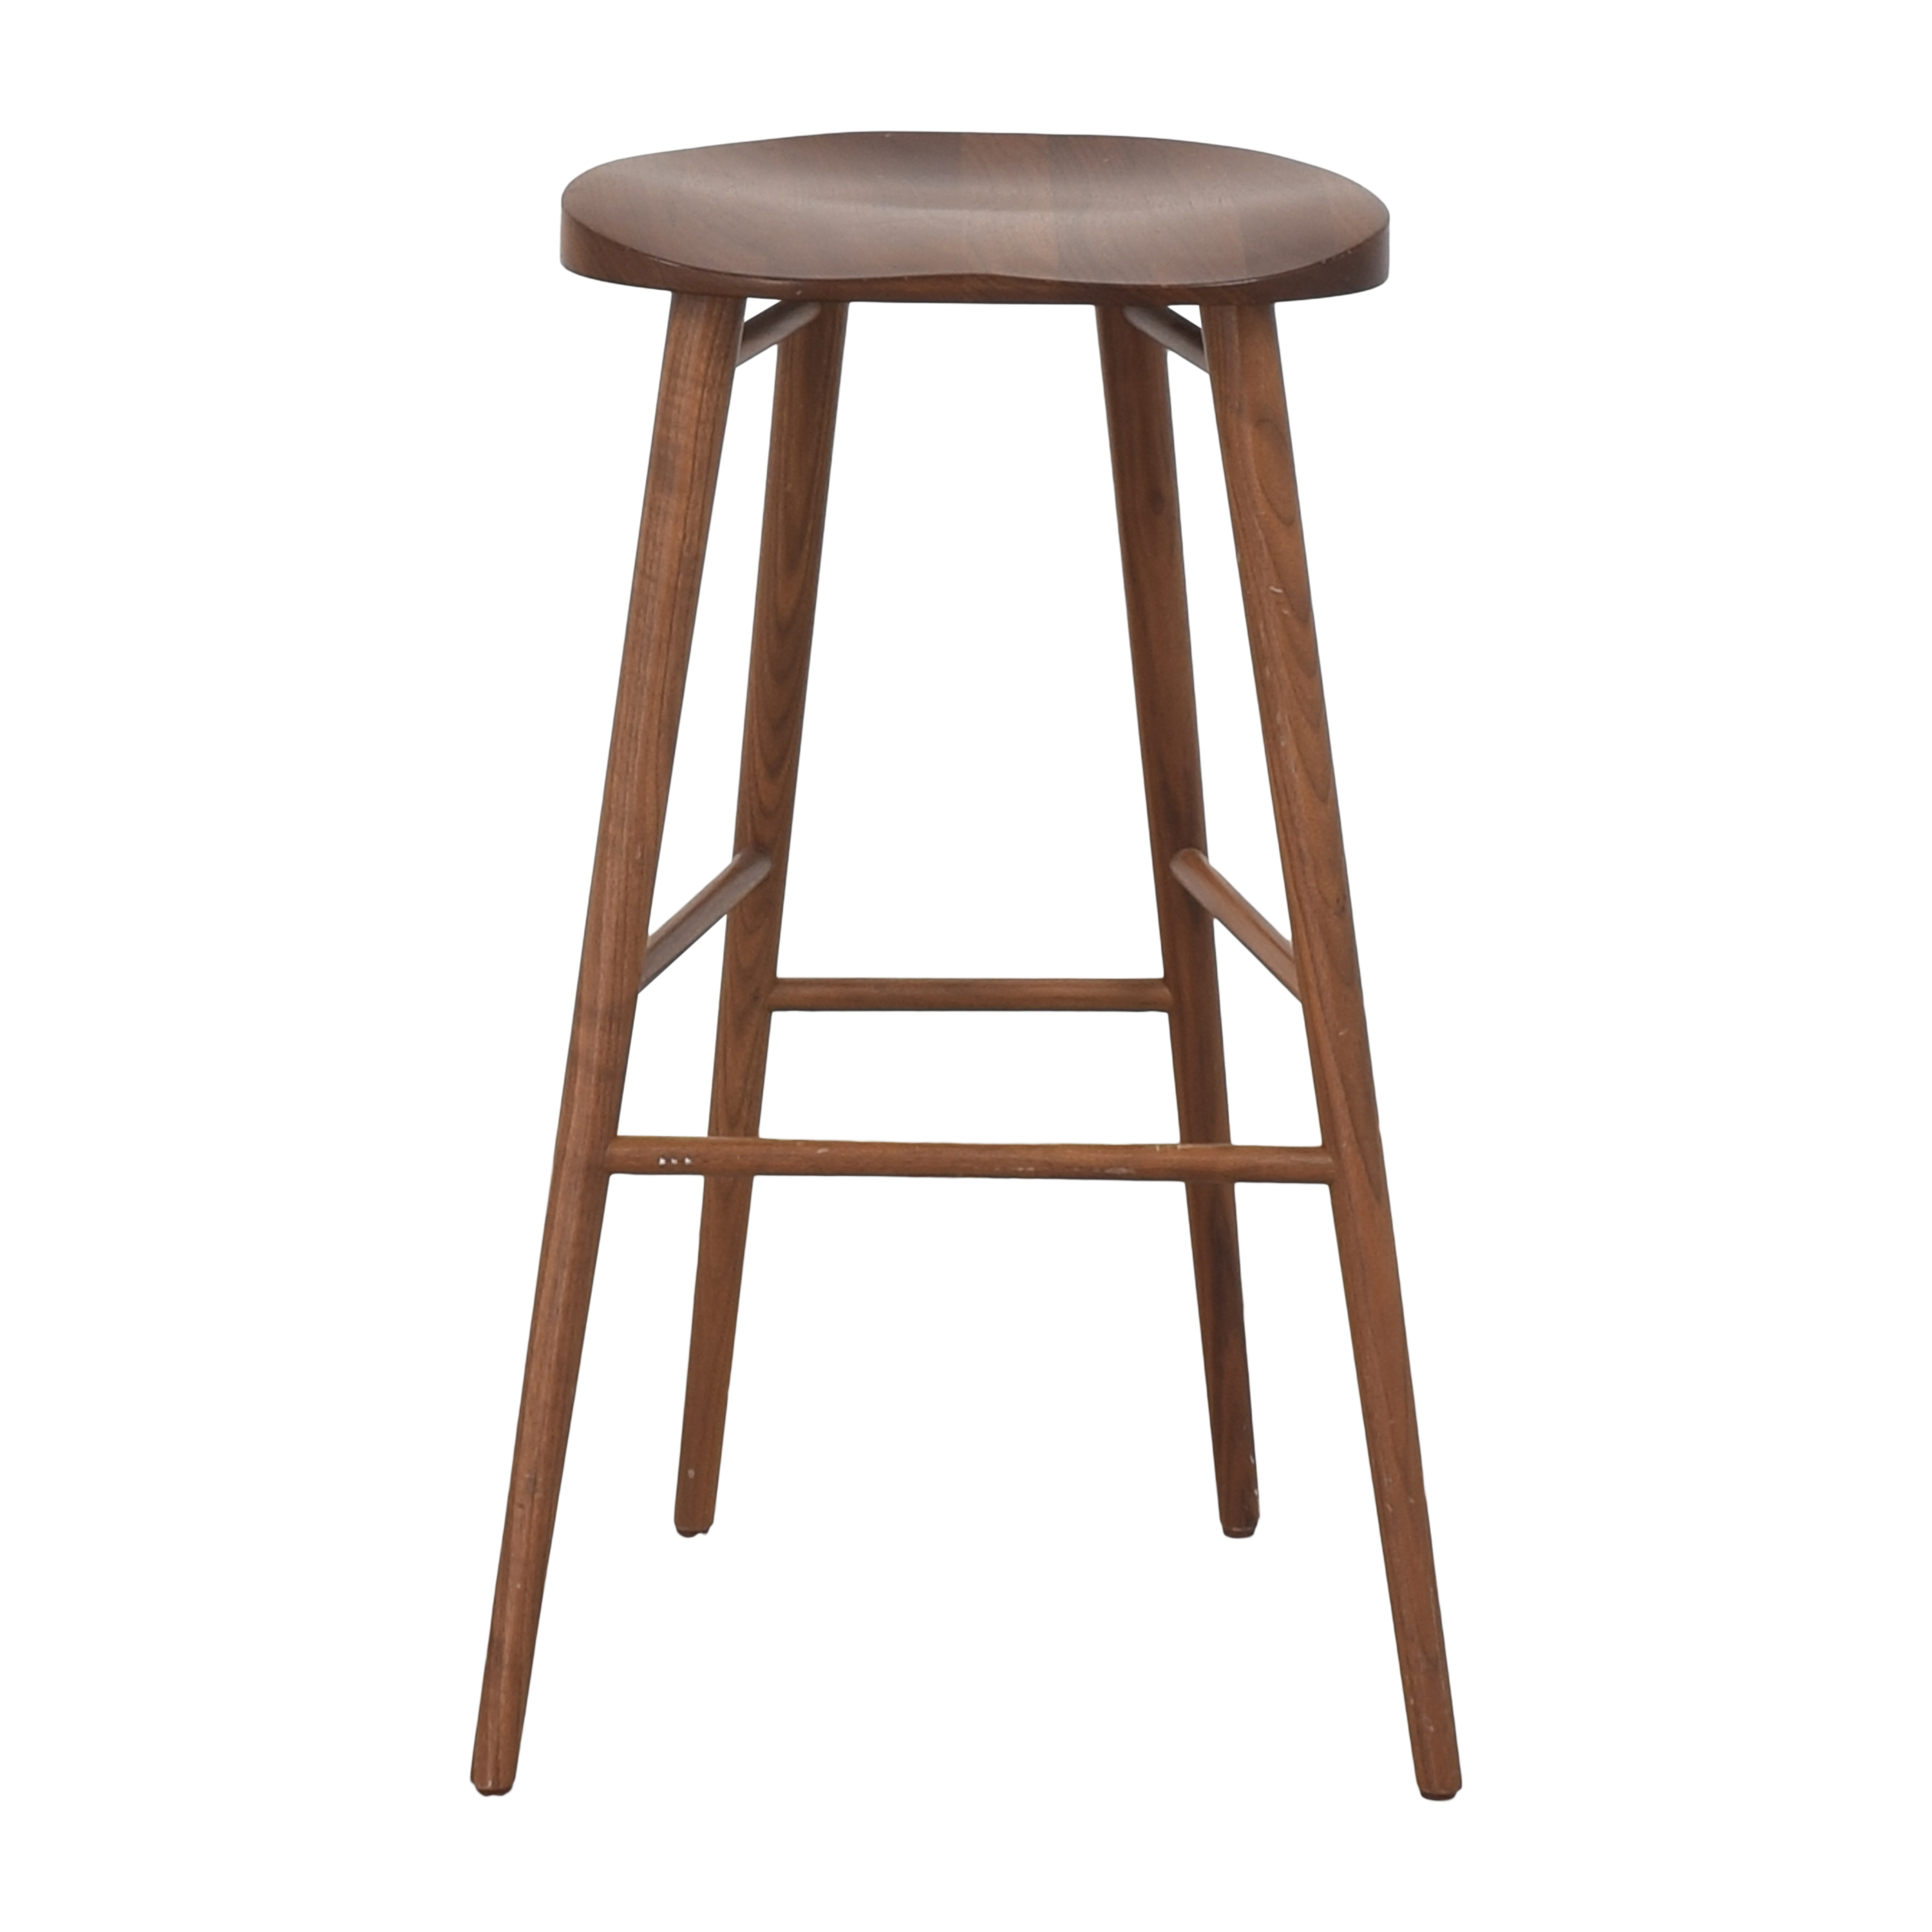 Room & Board Room & Board Bay Bar Stool brown